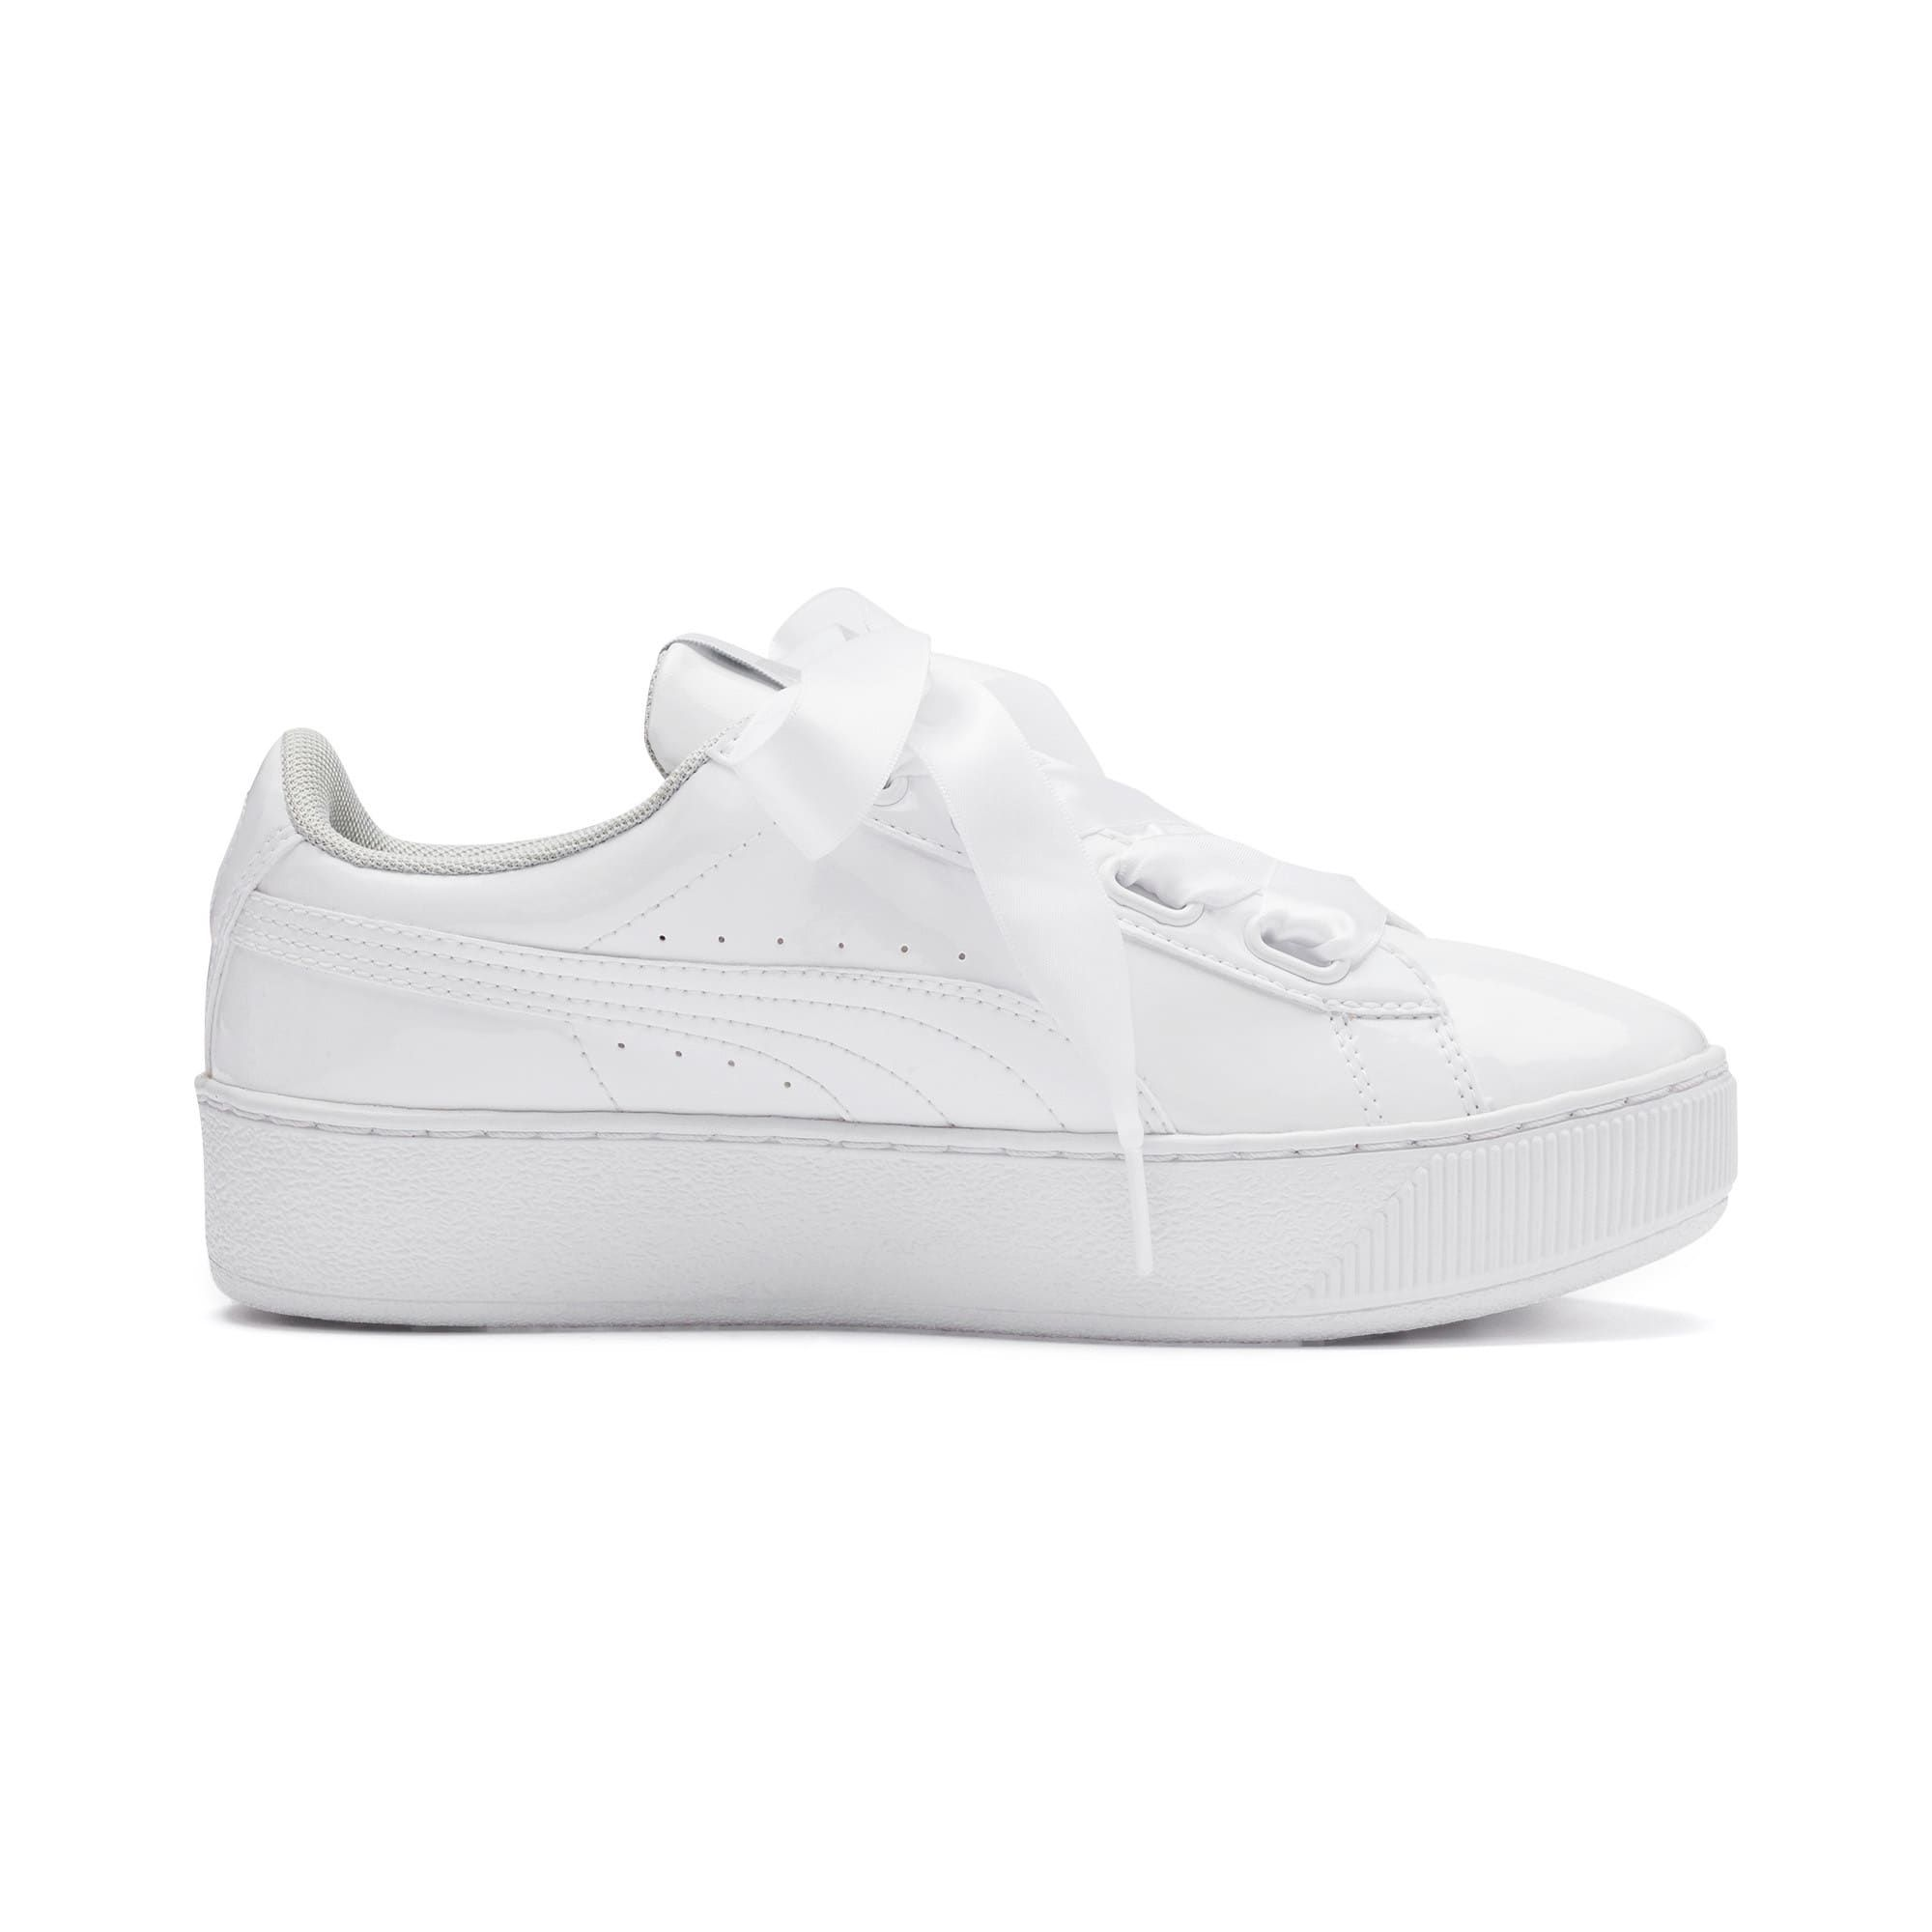 PUMA Vikky Platform Ribbon Patent Girls' Trainers in White size 4.5 #howtomakeabowwithribbon